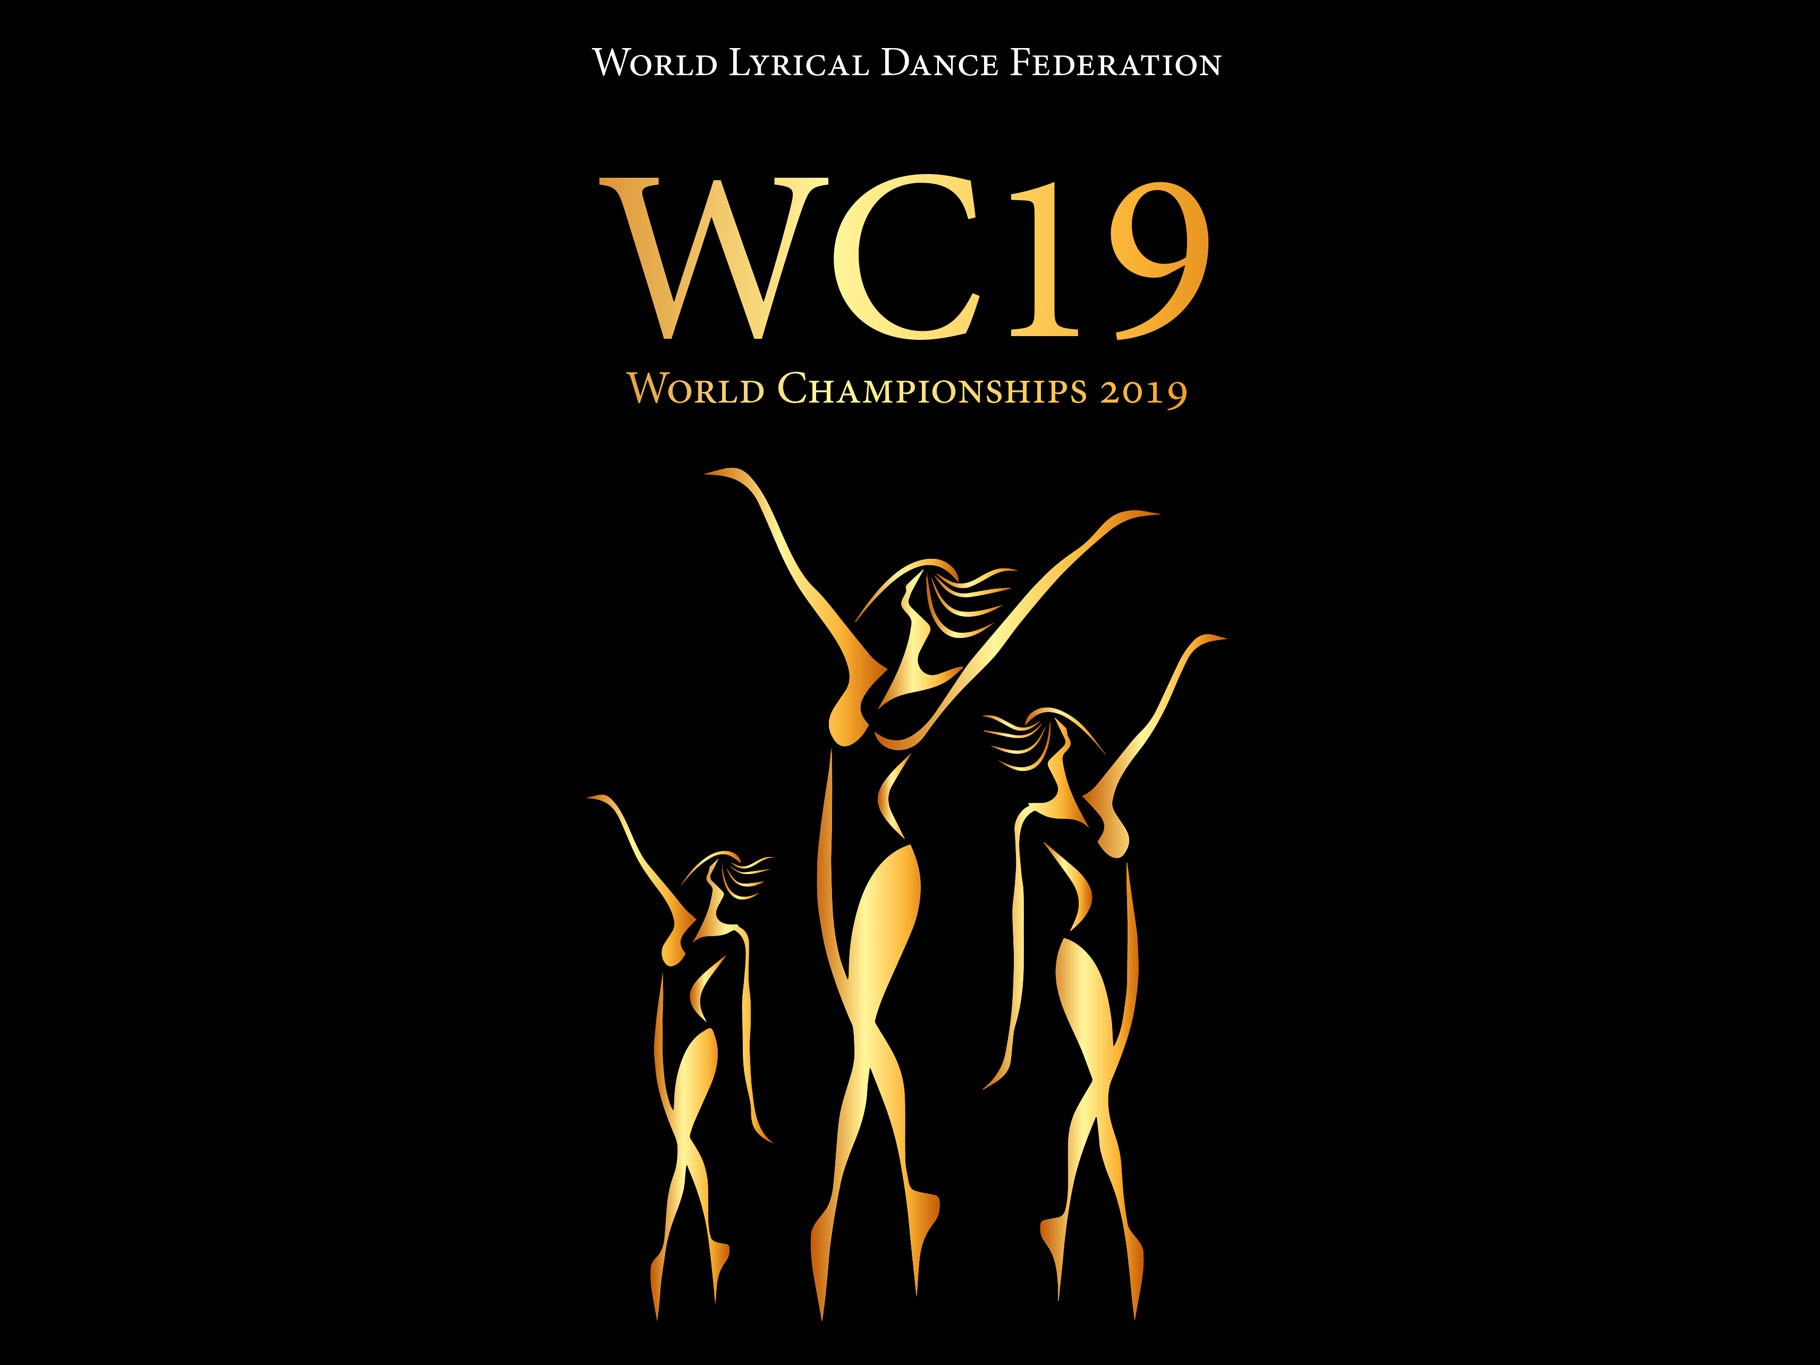 World Lyrical Dance Fed World Championships 2019